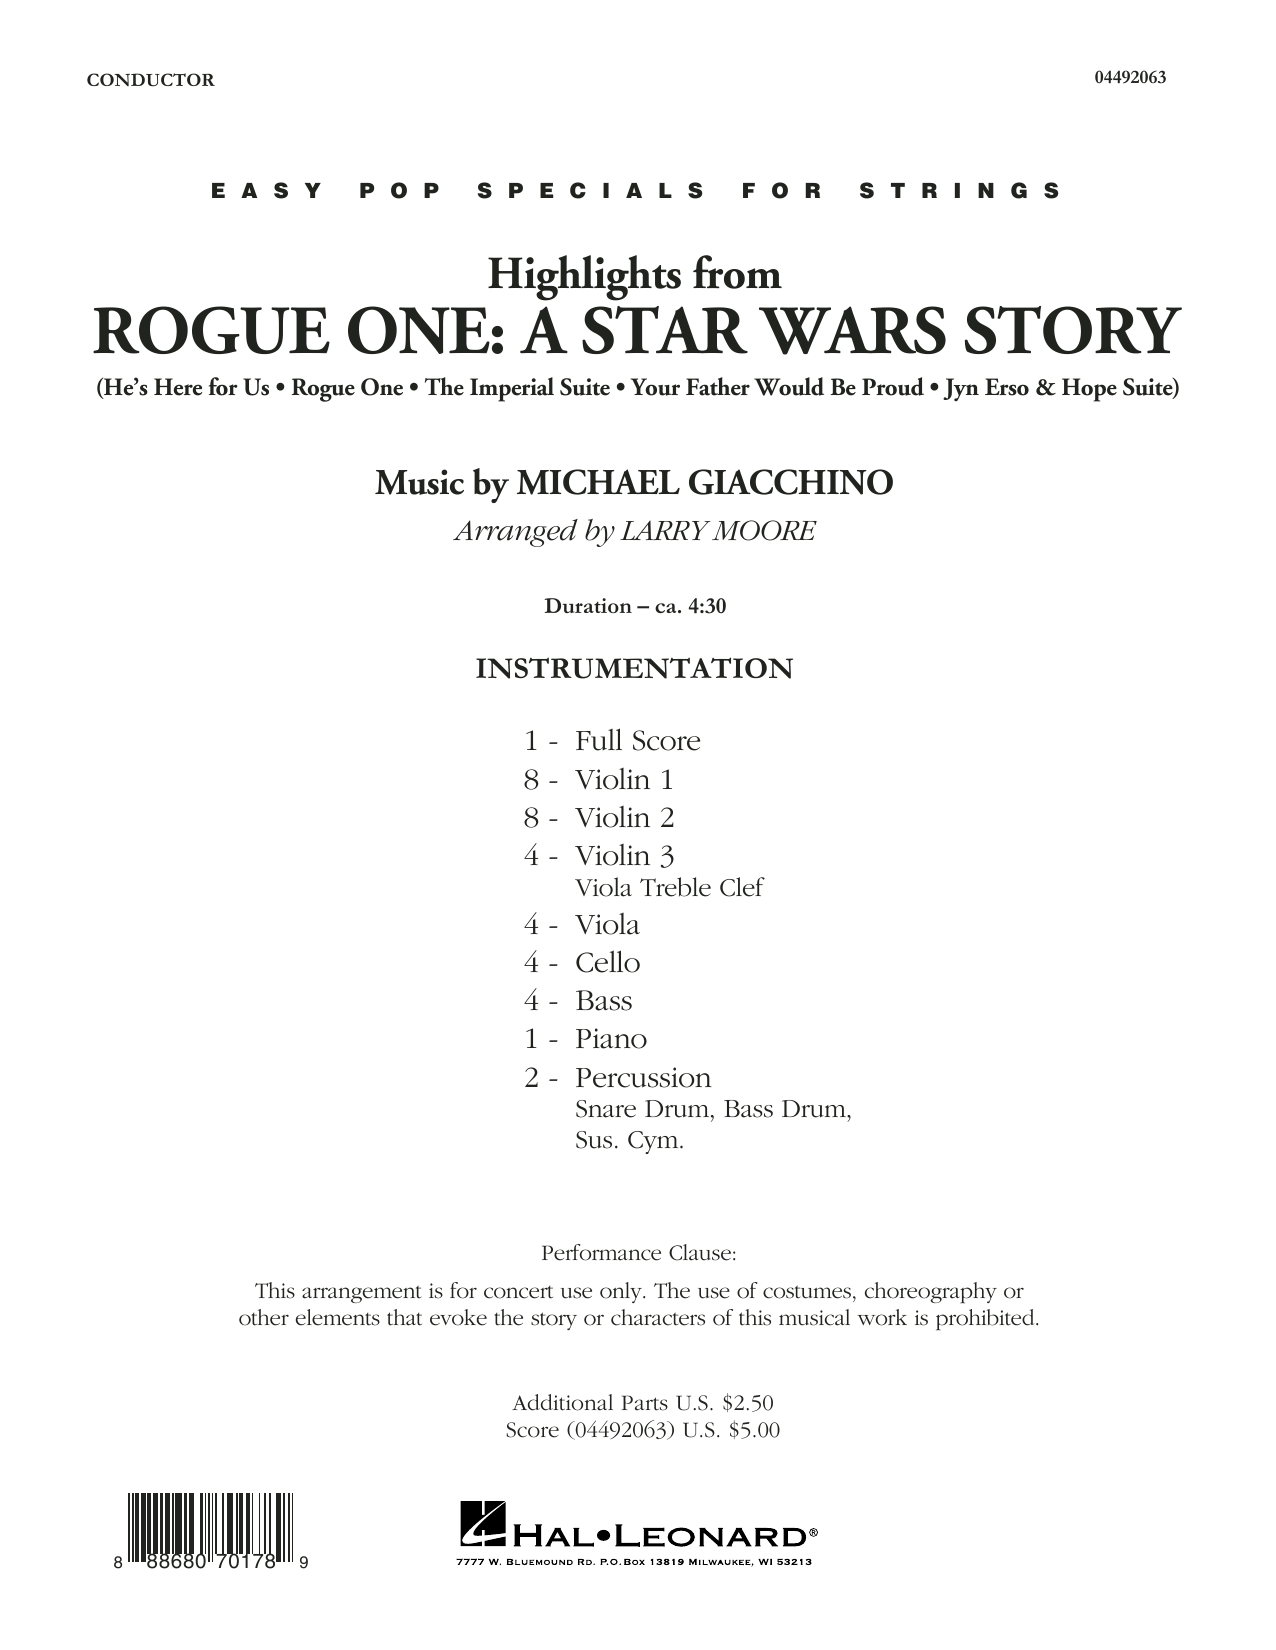 Larry Moore Highlights from Rogue One: A Star Wars Story - Conductor Score (Full Score) sheet music notes and chords. Download Printable PDF.